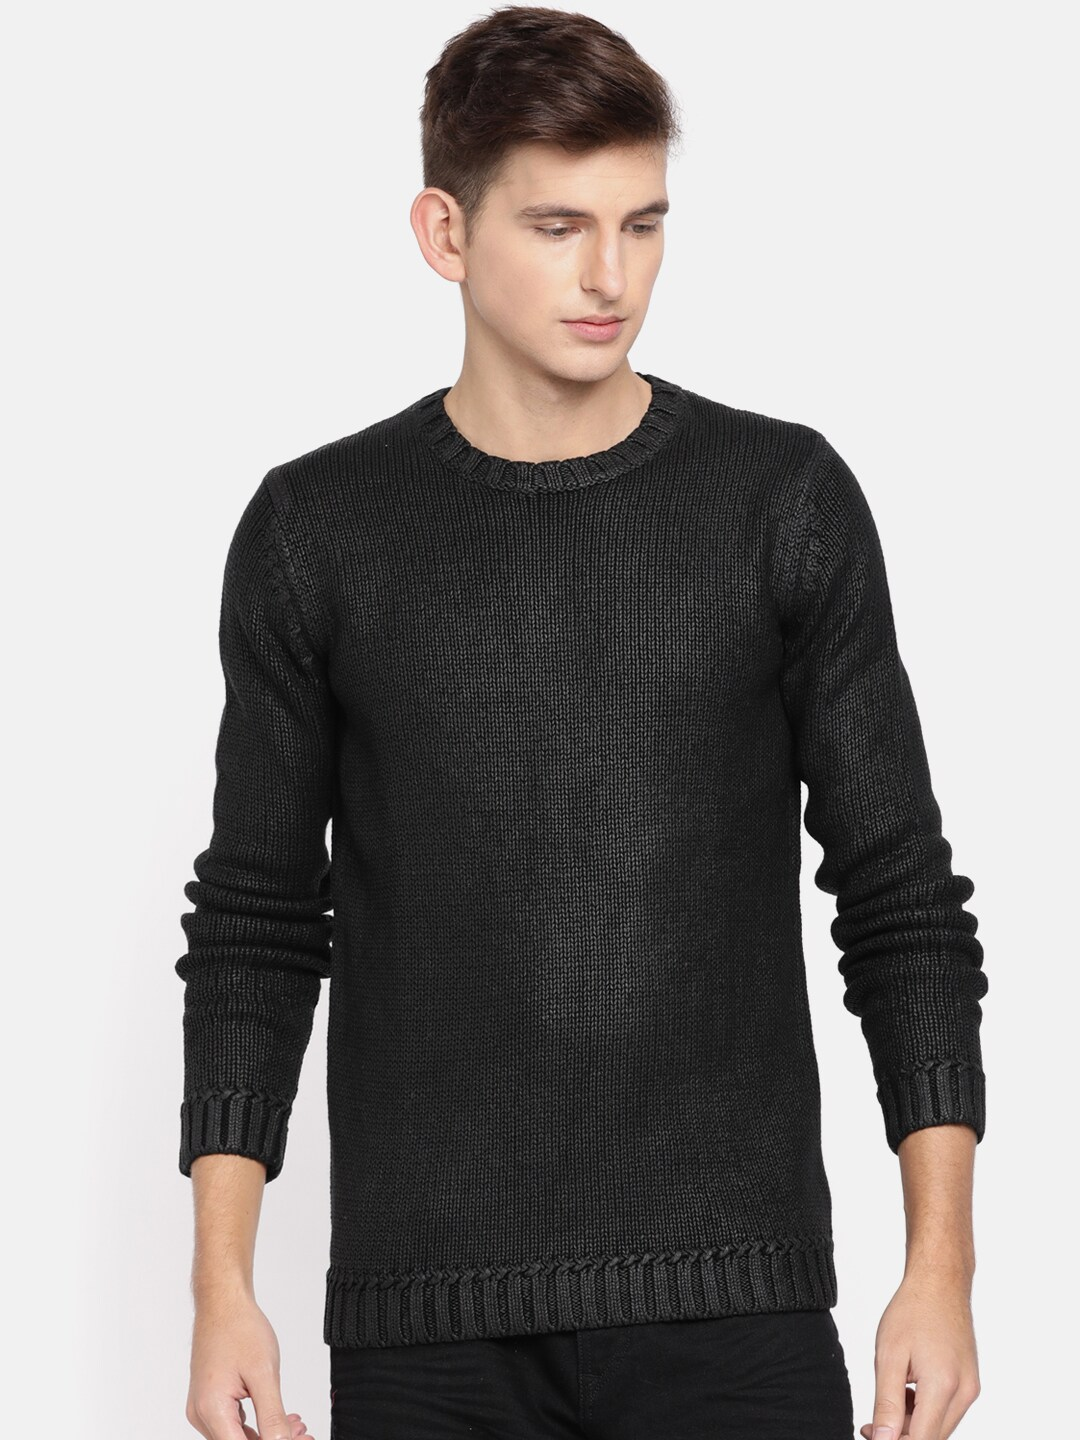 641cf48b3ce Sweaters for Men - Buy Mens Sweaters